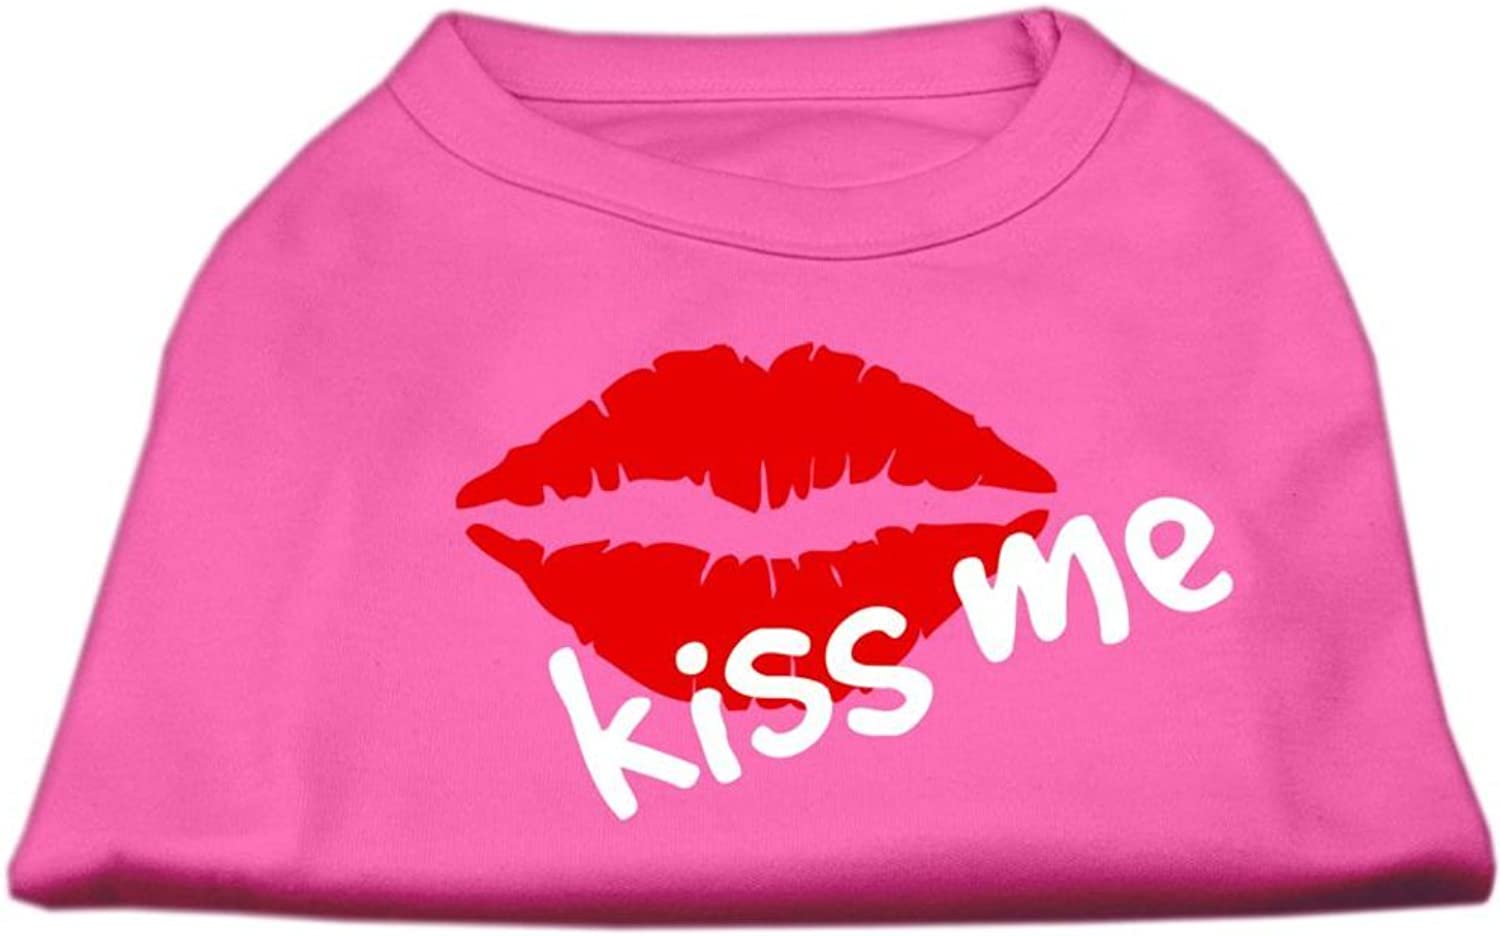 Mirage Pet Products 12Inch Kiss Me Screen Print Shirt for Pets, Medium, Bright Pink